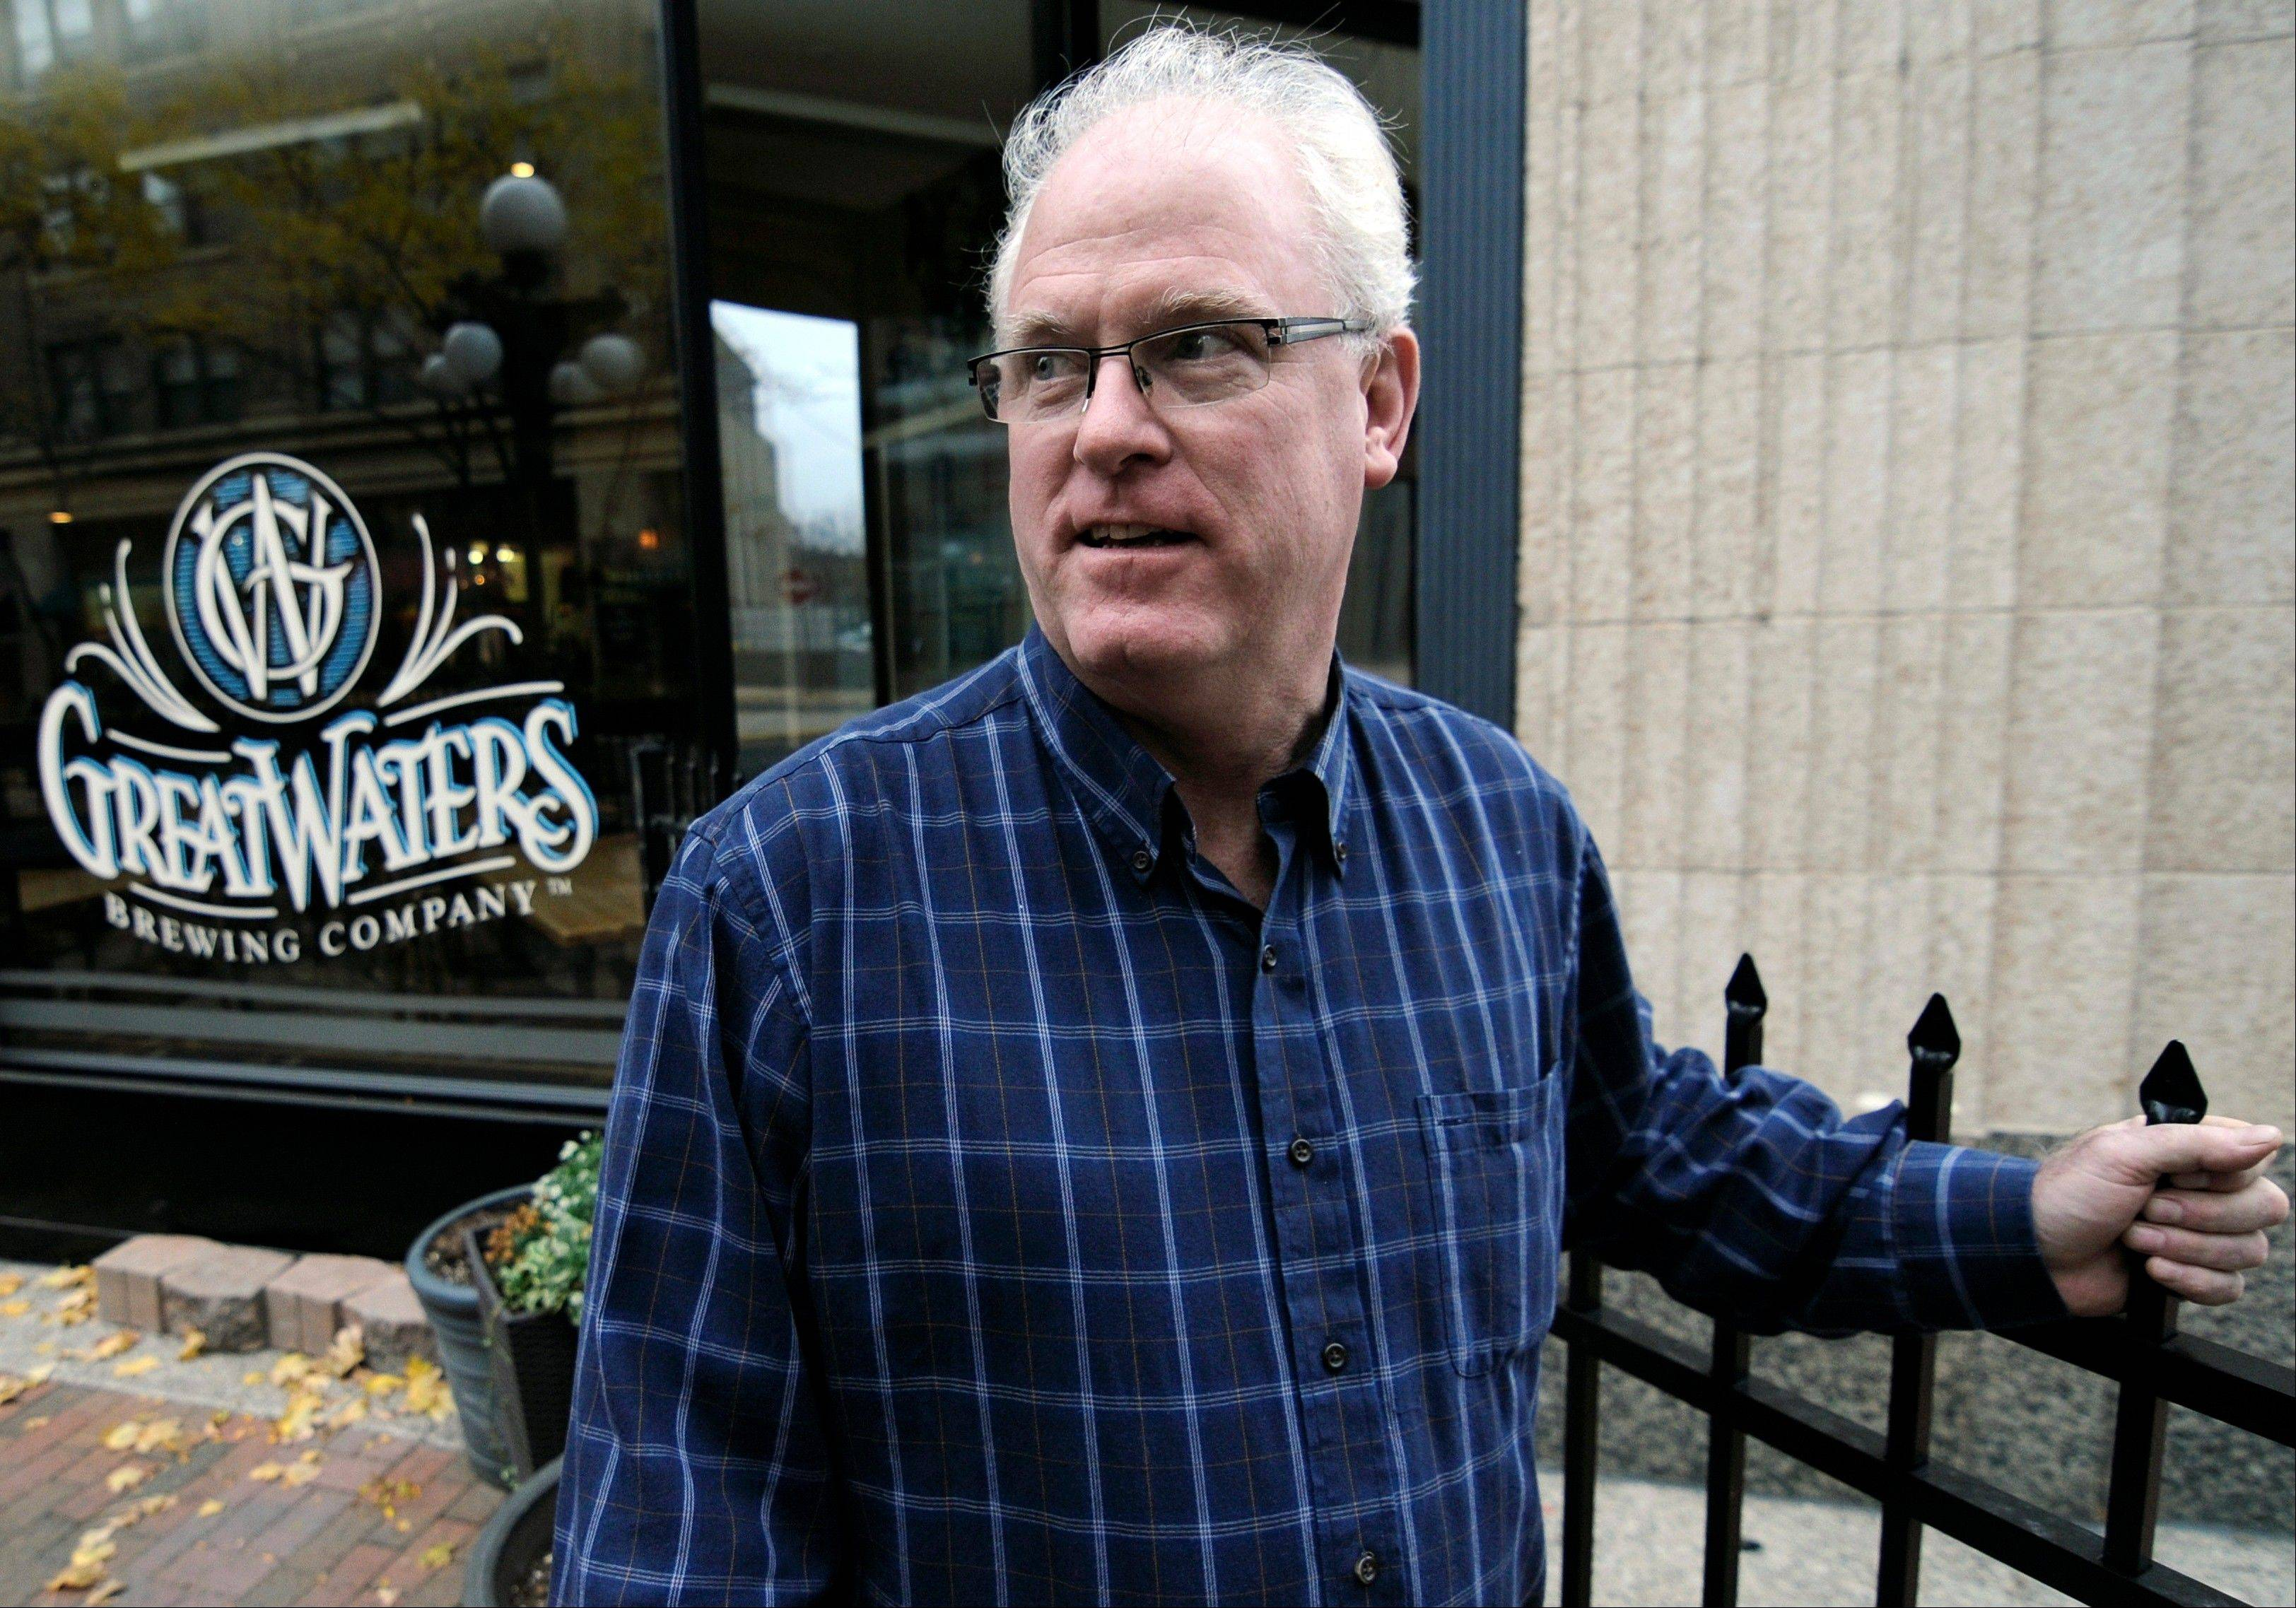 Great Waters Brewing Co. owner Sean O�Byrne is shown outside his brewpub located near the Xcel Center, home of the Minnesota Wild NHL hockey team. O�Byrne�s business is down 20 percent since the start of the NHL lockout and that�s a painful reminder of the 2004-05 lockout that wiped out the entire NHL season.